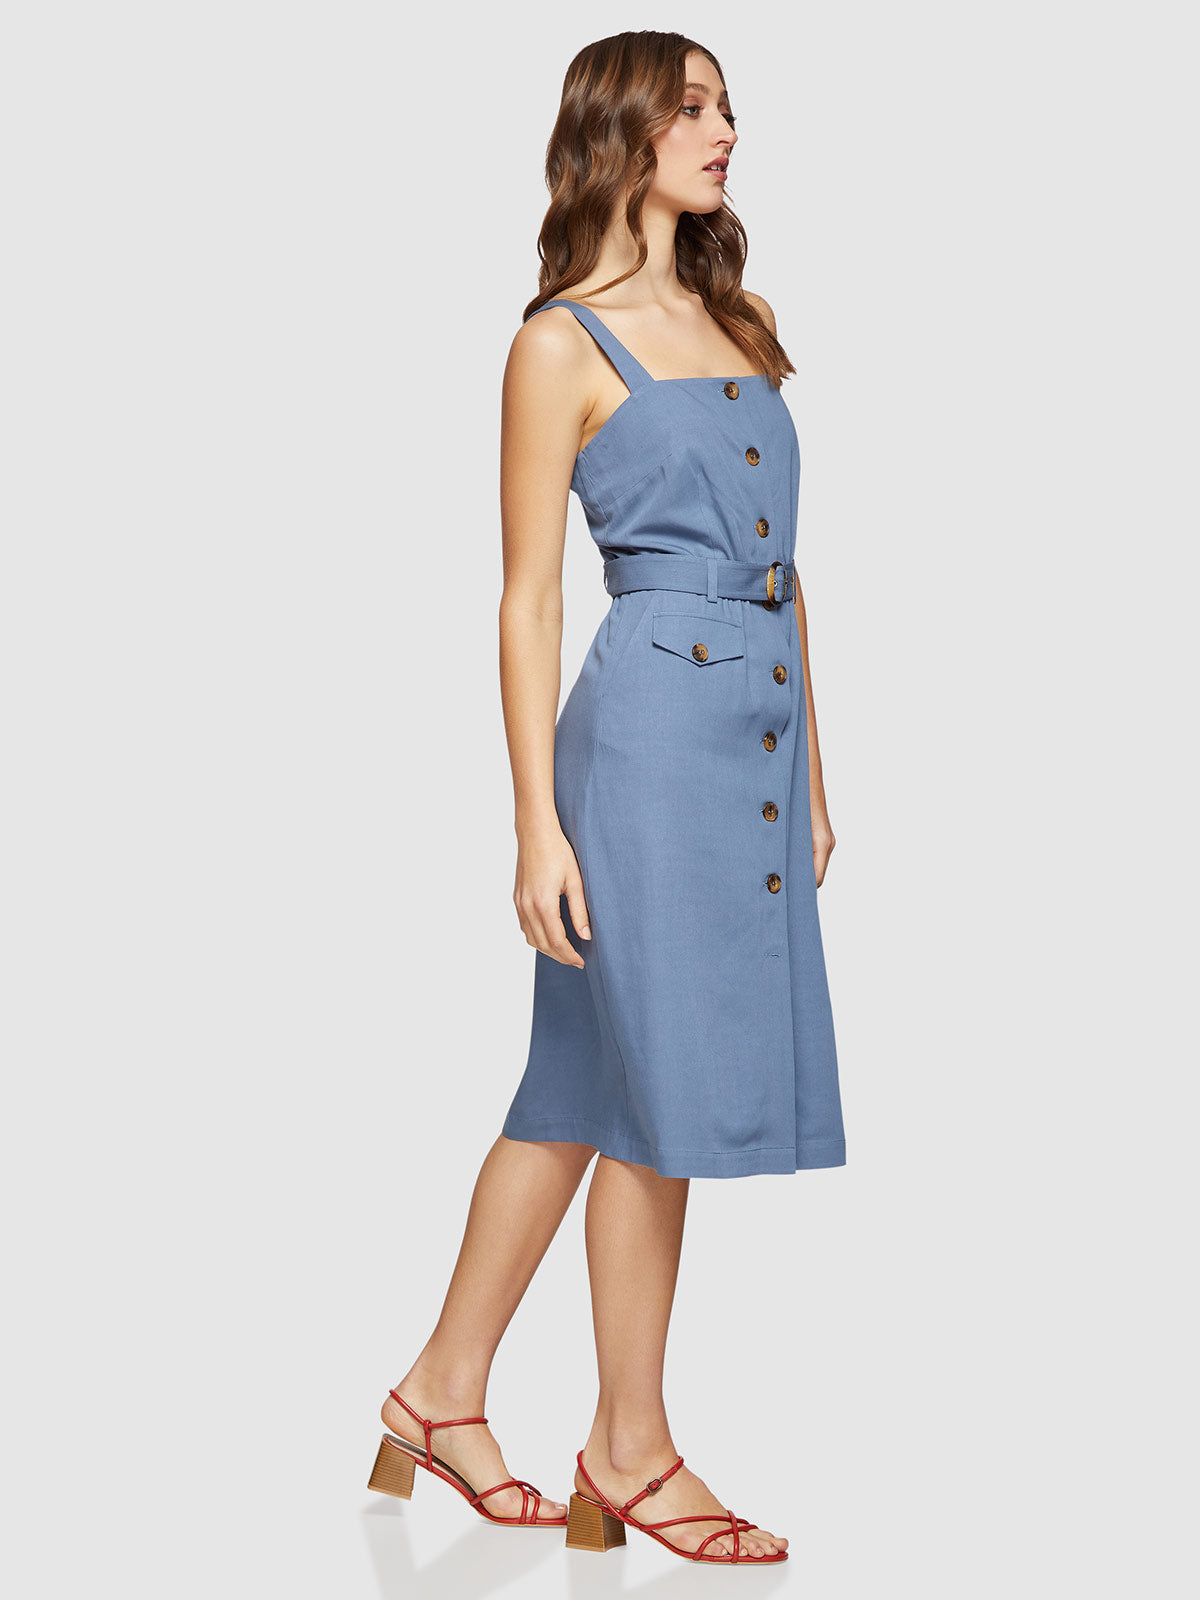 ISABEL BUTTON UP DRESS BLUE